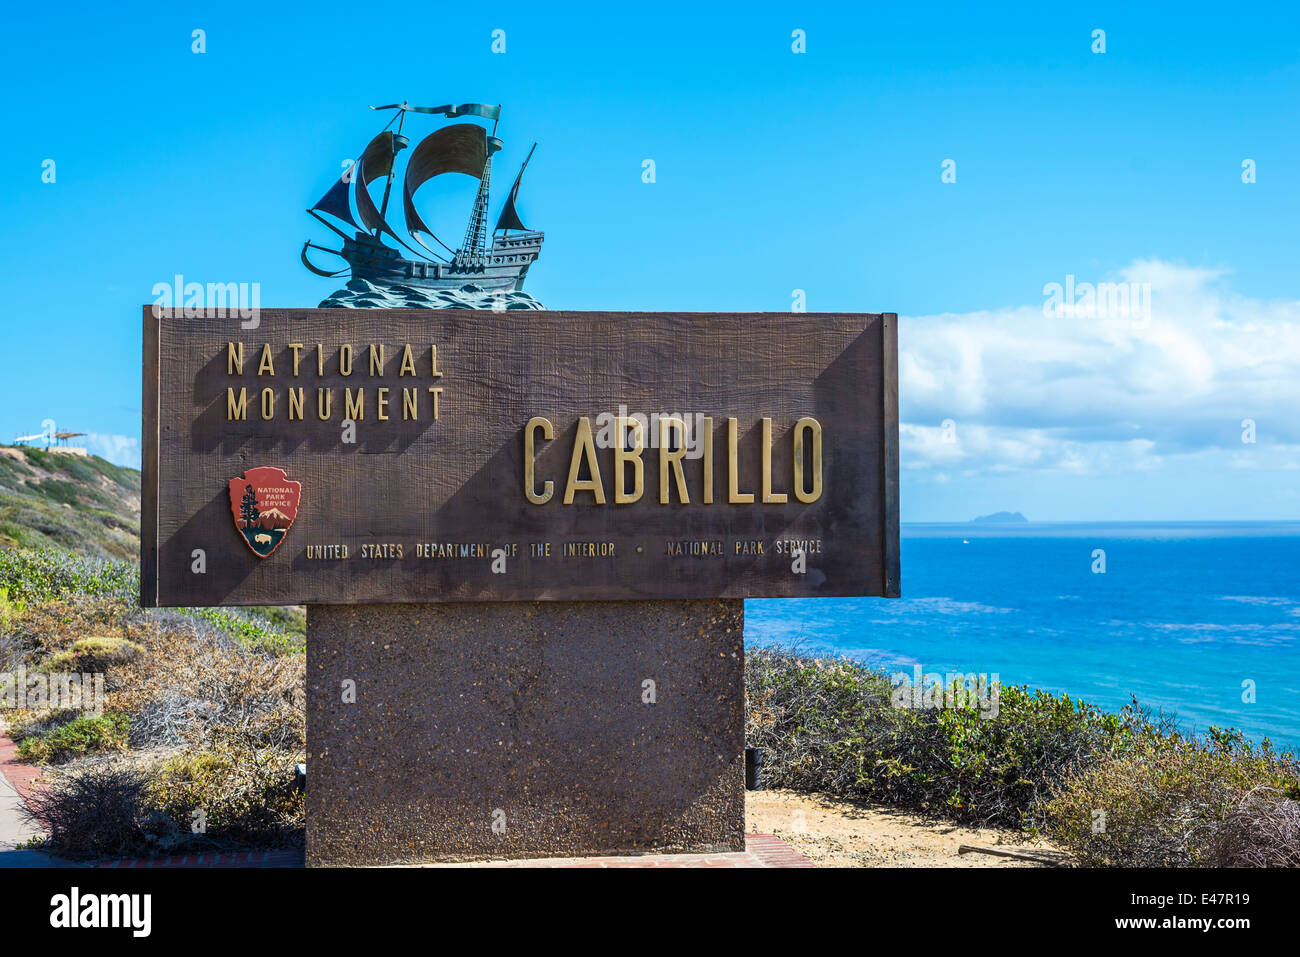 Cabrillo National Monument sign. San Diego, California, United States. - Stock Image